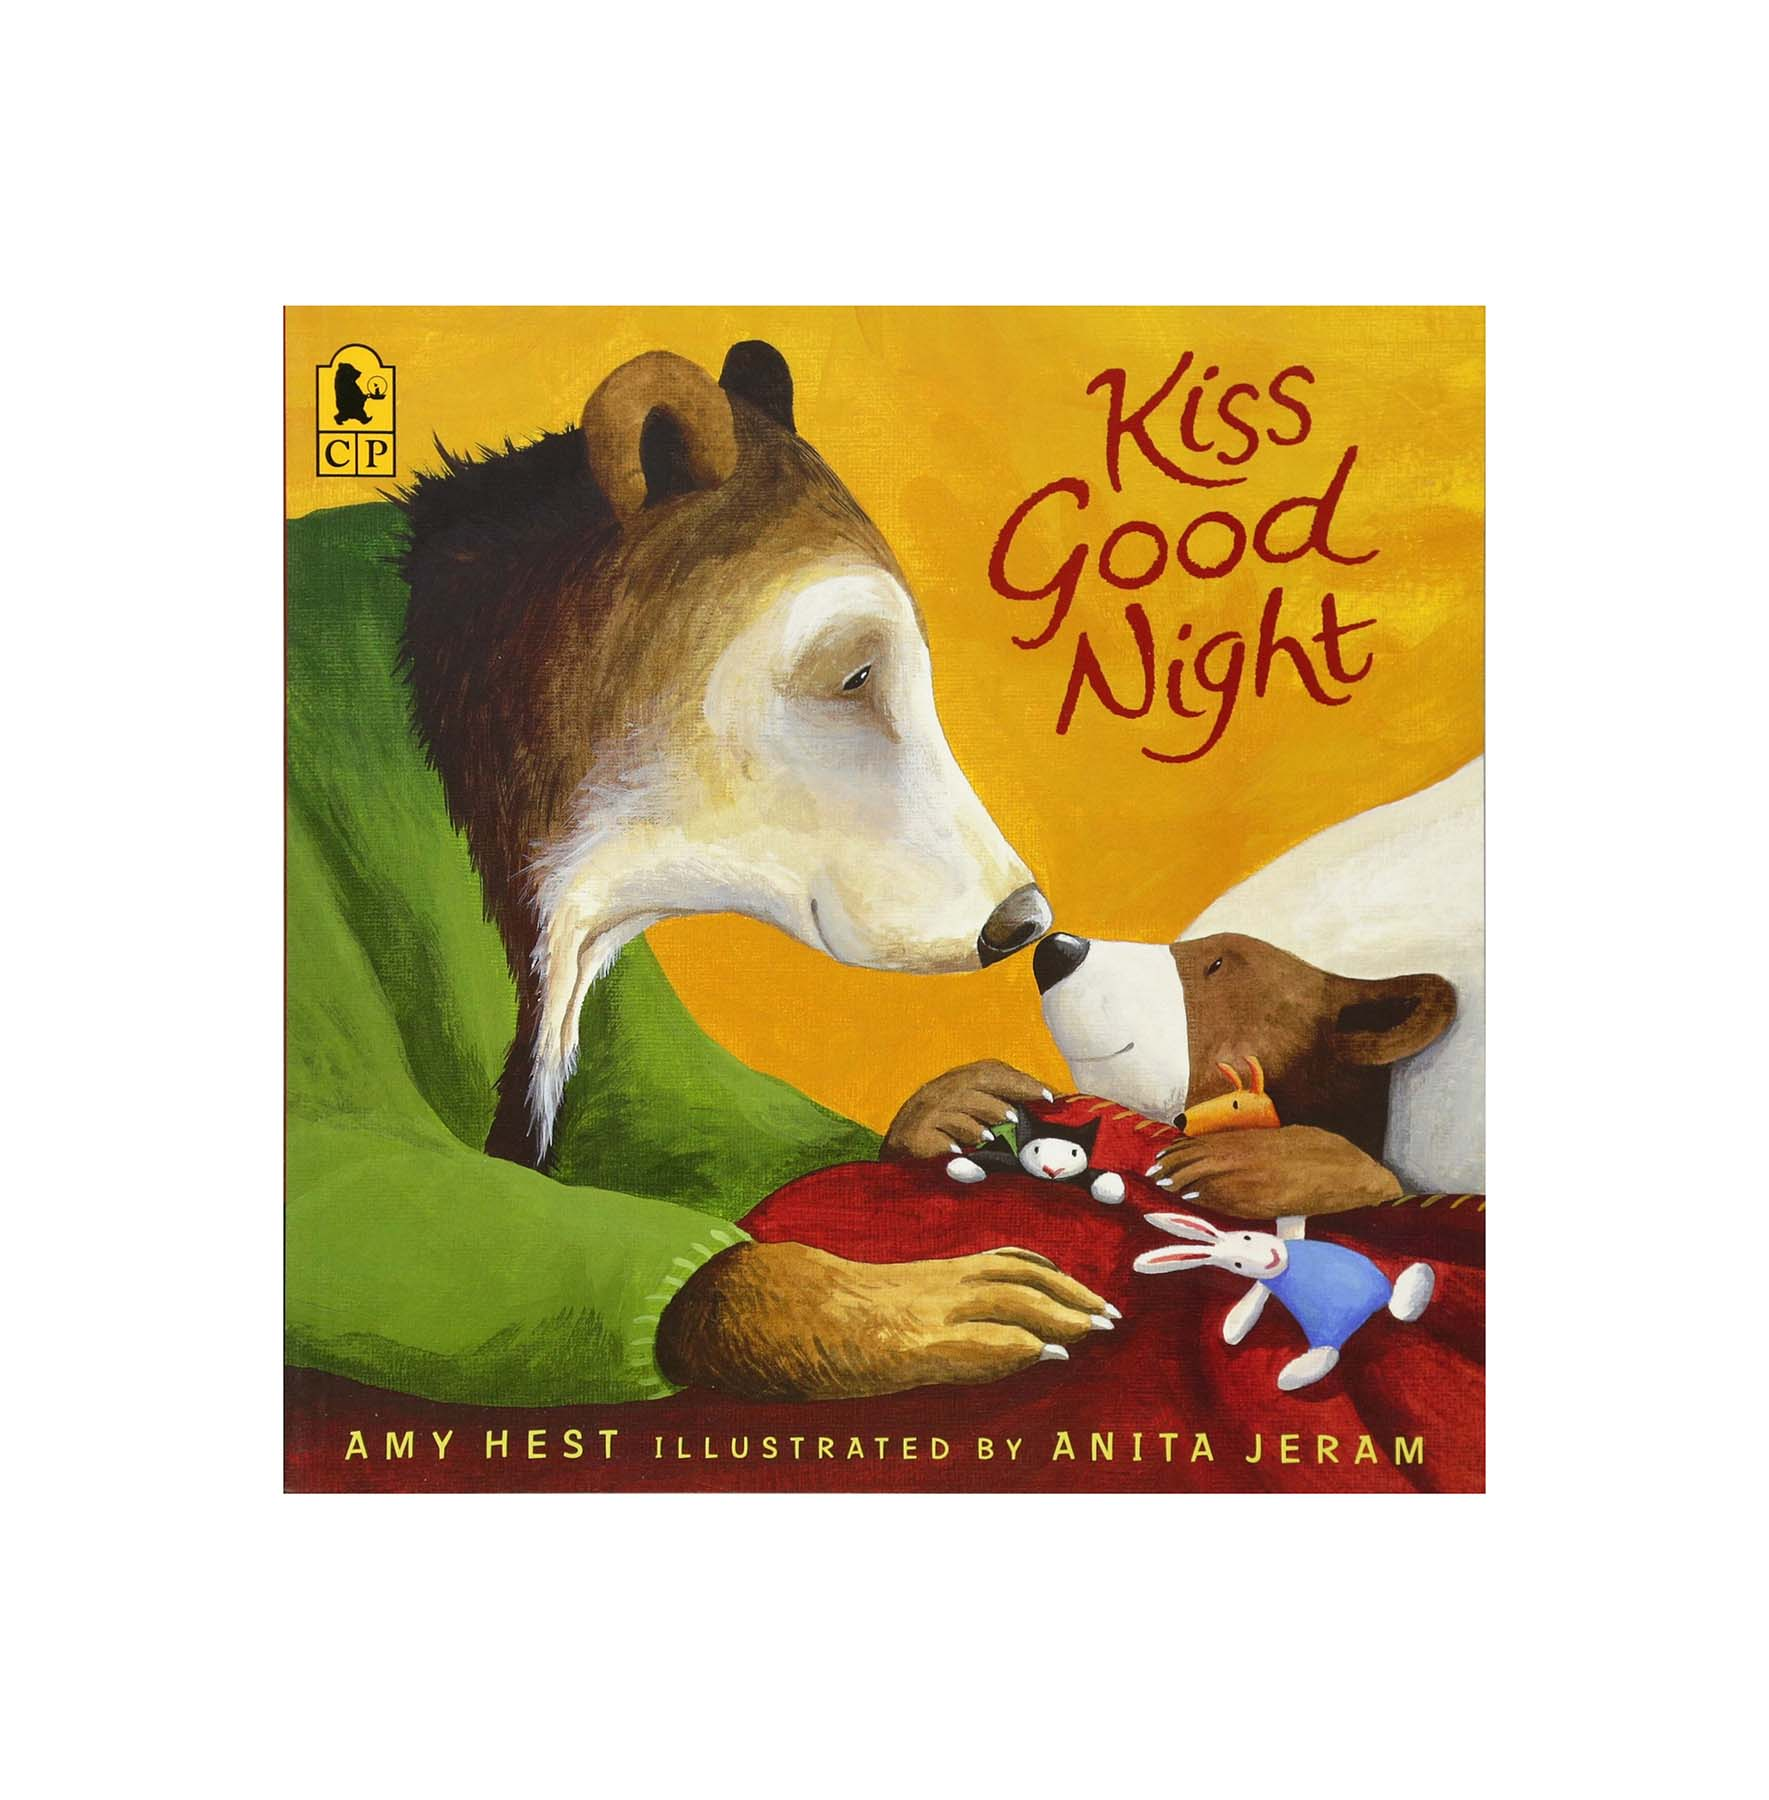 Kiss Good Night, by Amy Hest